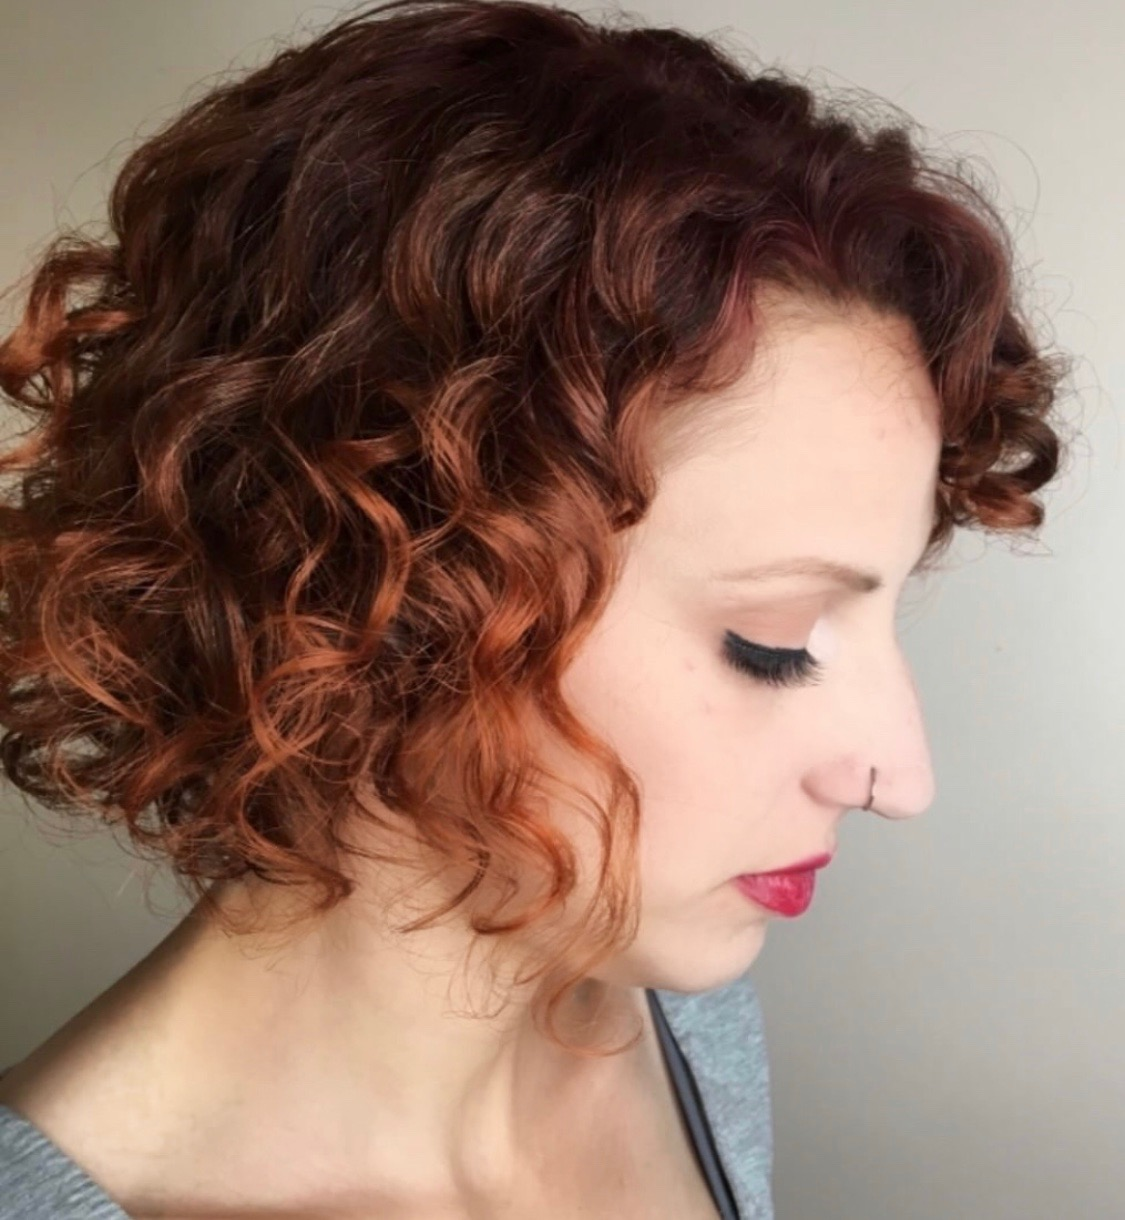 profile view woman with short curly hair